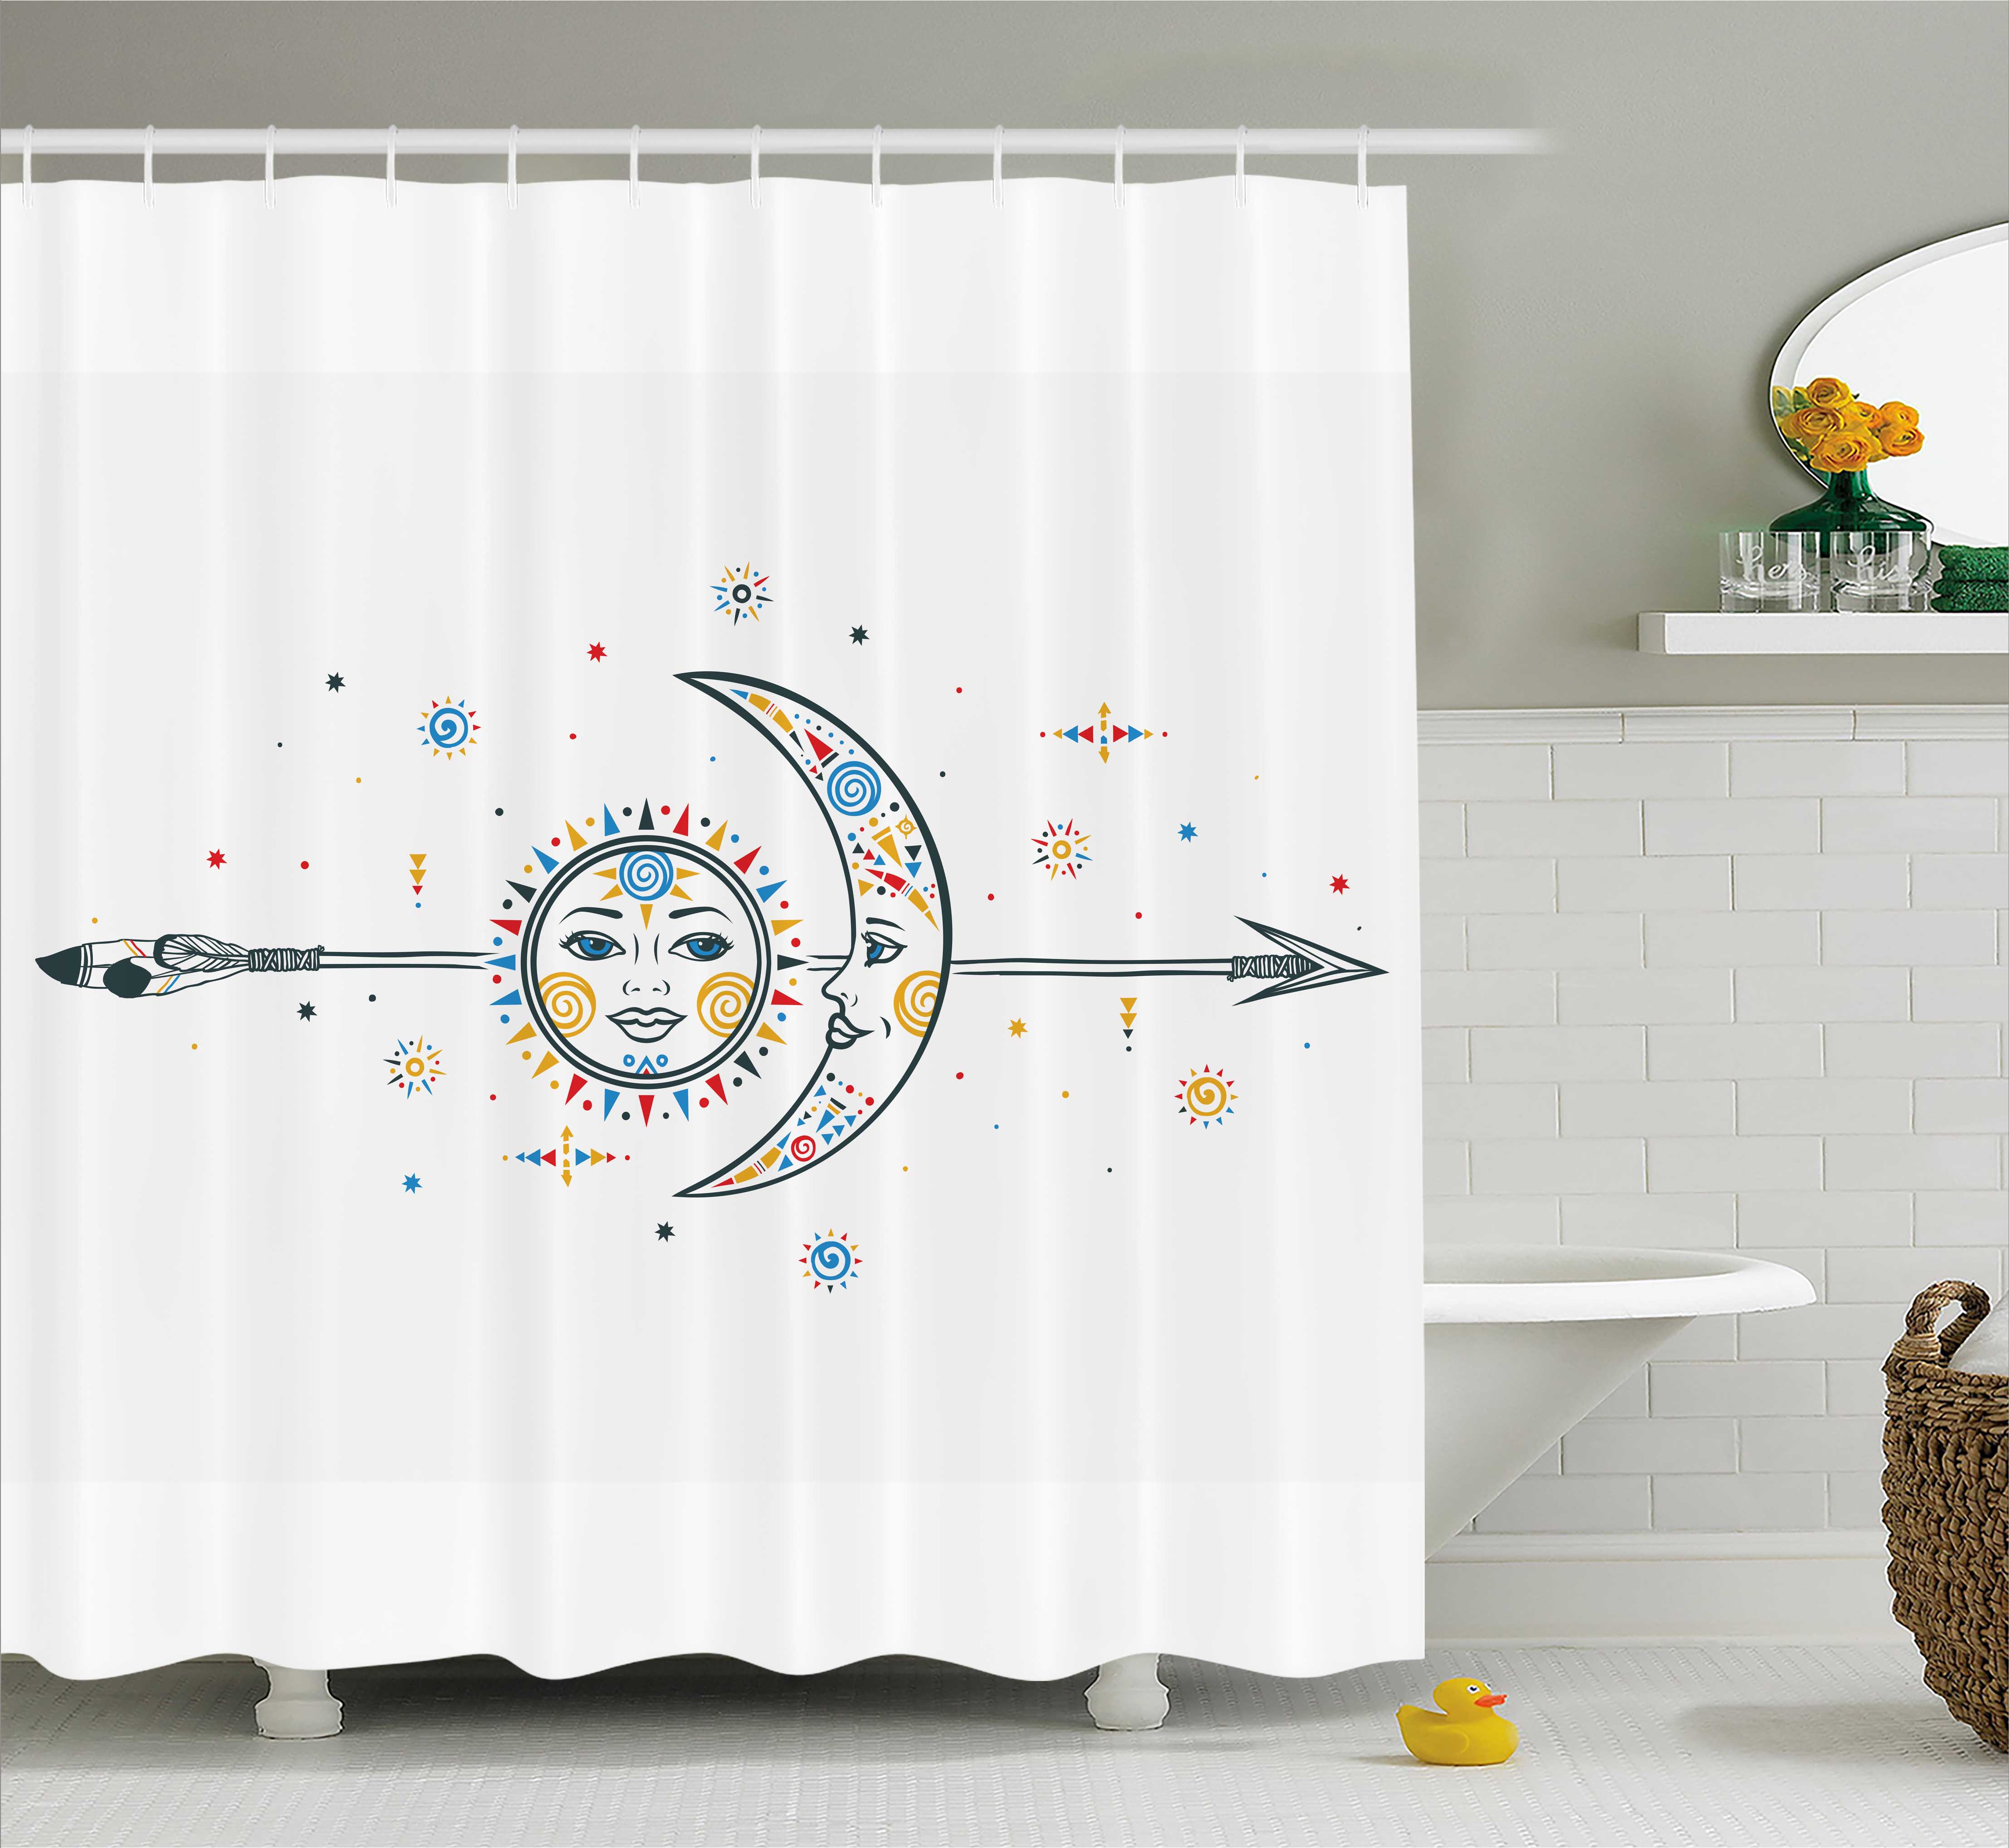 Aztec Shower Curtain Ethnic Moon Sun With Spiral Vortex Stars Figures Occult Art Theme Image Print Fabric Bathroom Set Hooks Multicolor